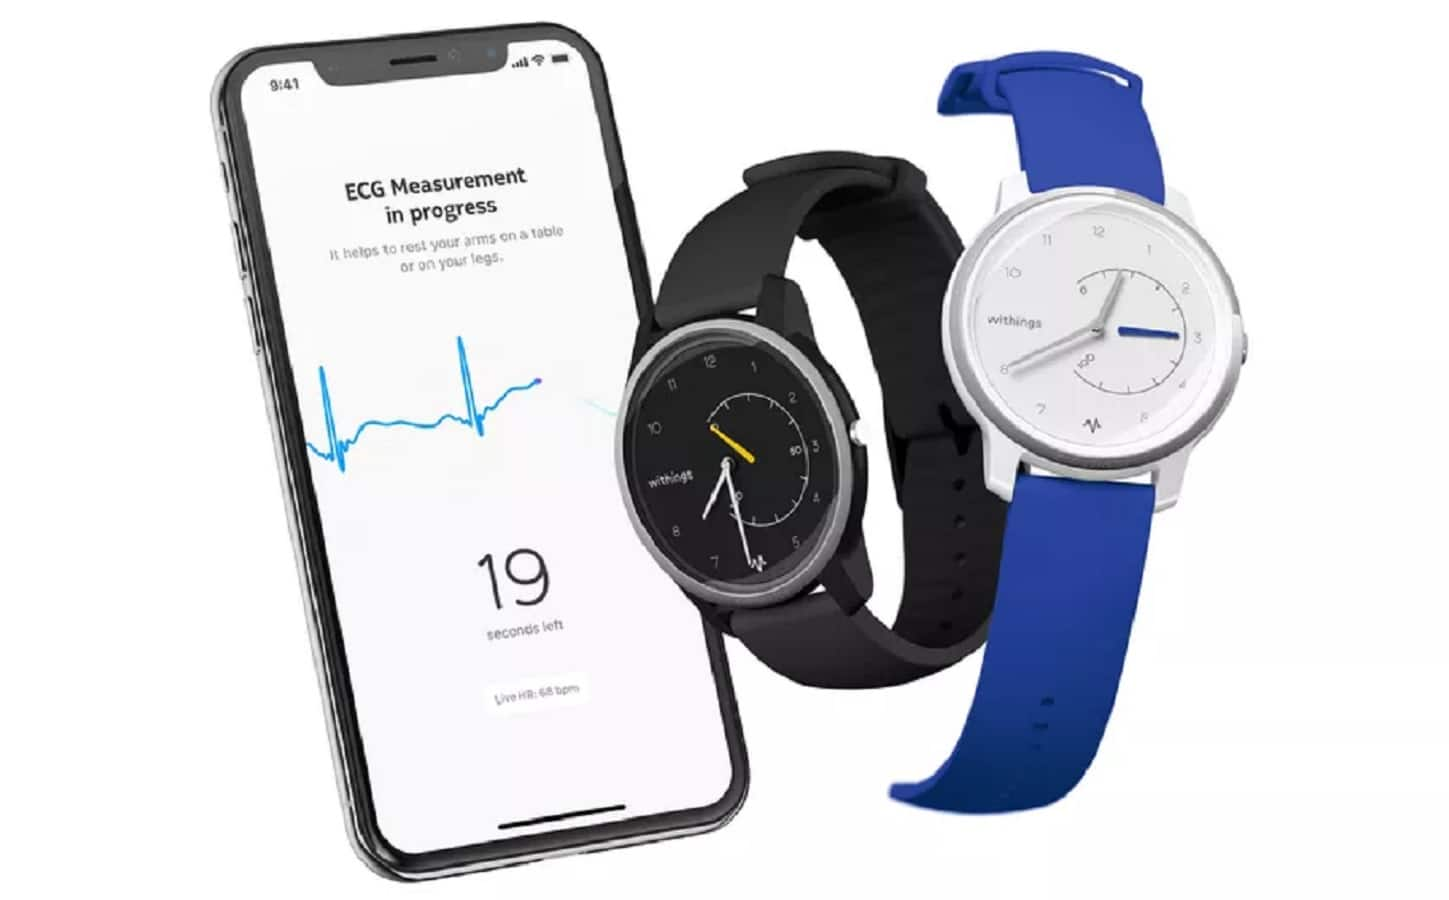 withings watch showing the ecg feature